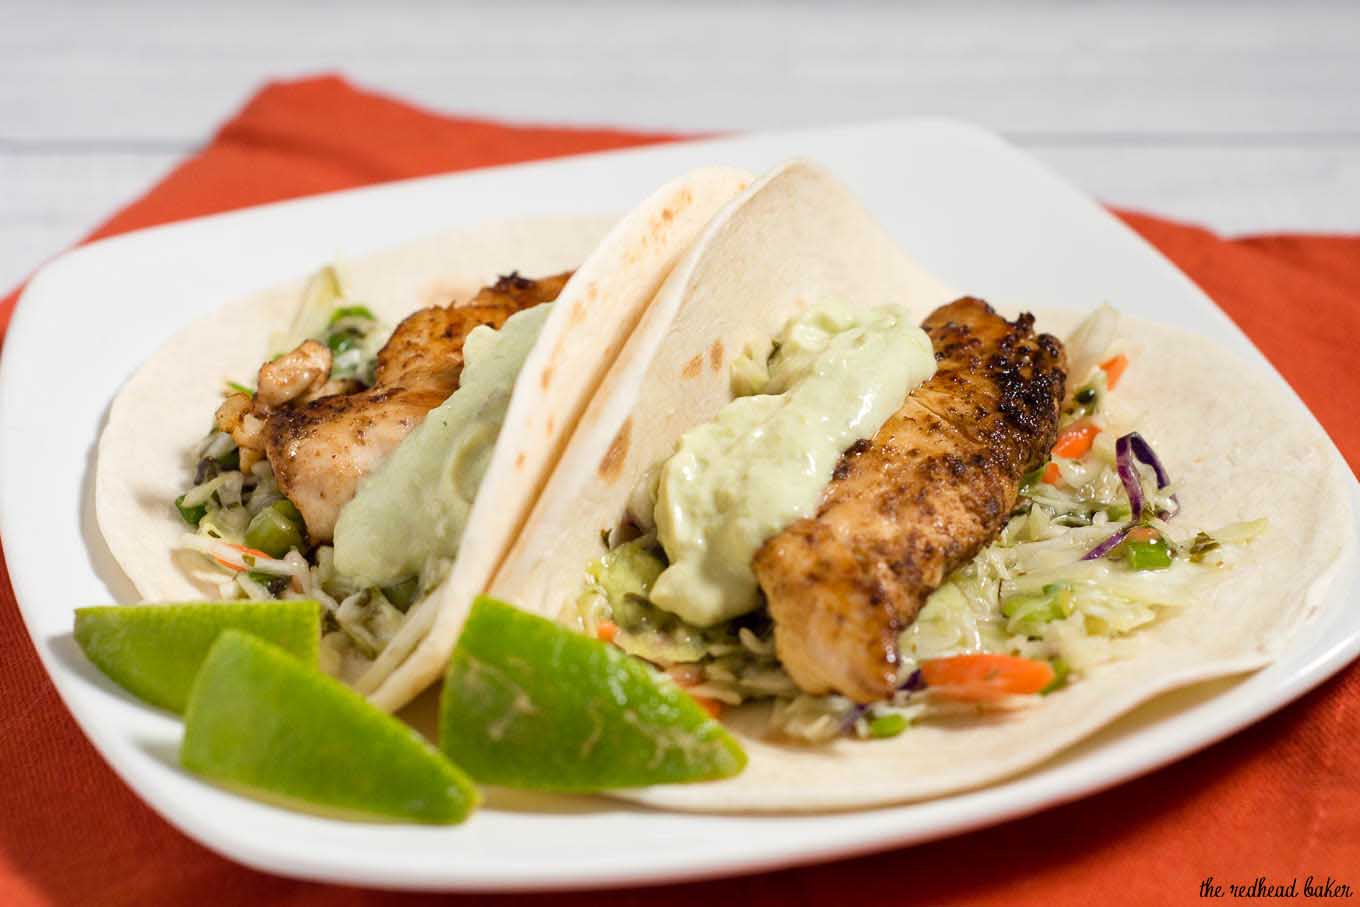 Chicken tacos are spiced with ancho chile powder and topped with cilantro slaw and avocado cream. This delicious meal is ready in under 30 minutes!